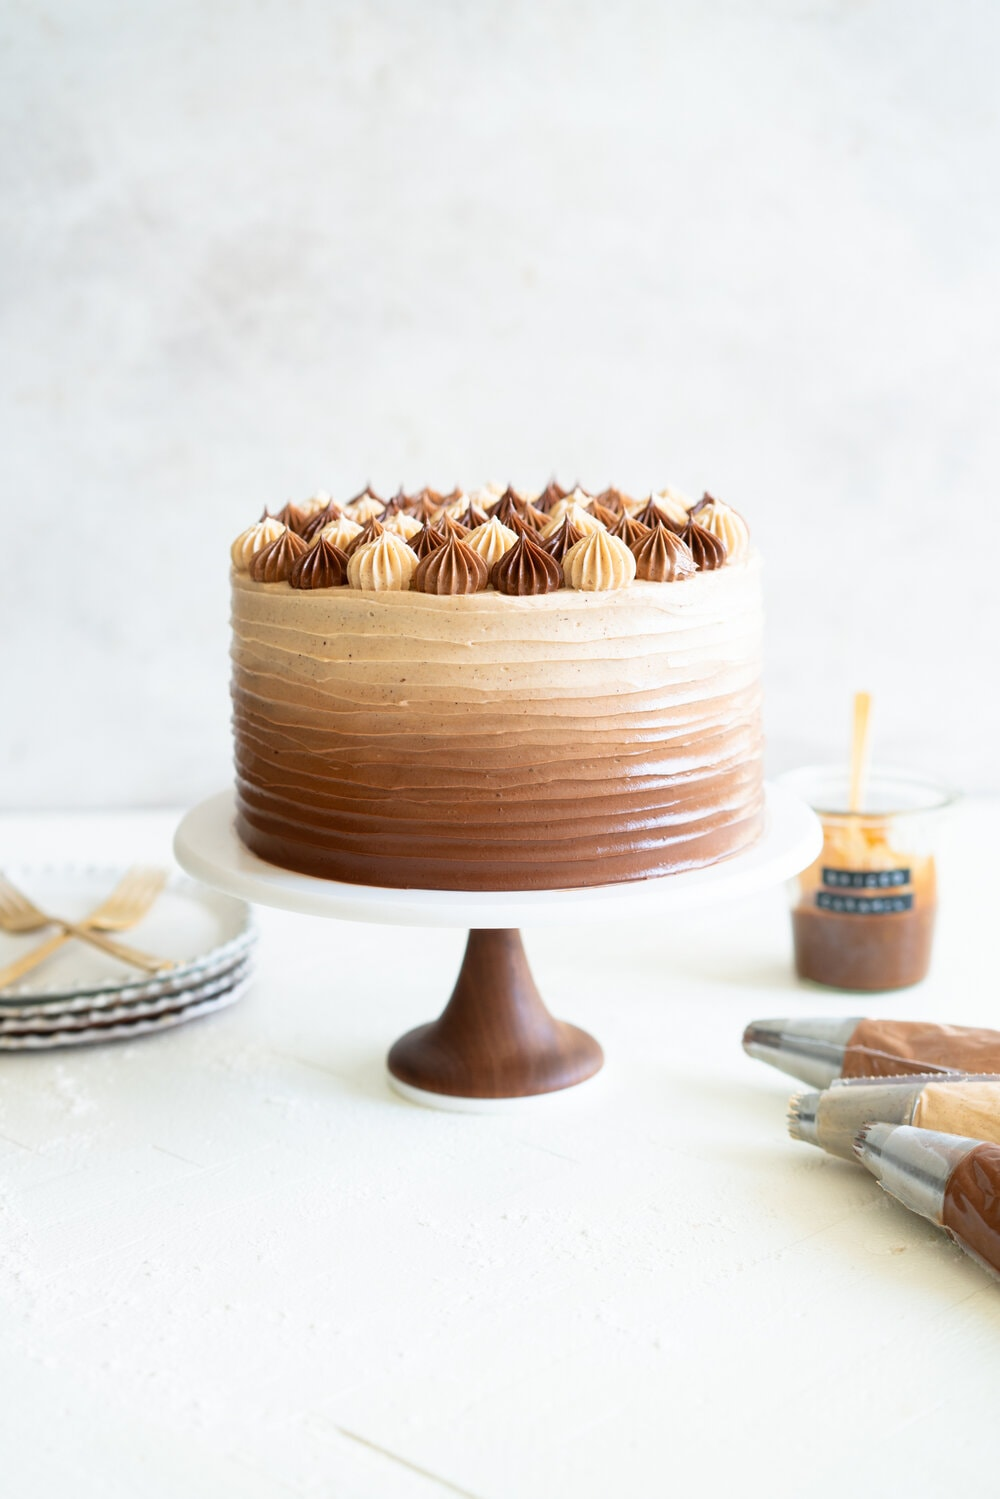 Apple Cider Layer Cake with Spiced Caramel Swiss Meringue Buttercream. This layer cake has reduced apple cider added to the batter, giving it a delicate apple flavour. It is finished with spiced salted caramel swiss meringue buttercream with an ombre finish.  #applecidercake #caramelbuttercream #swissmeringue